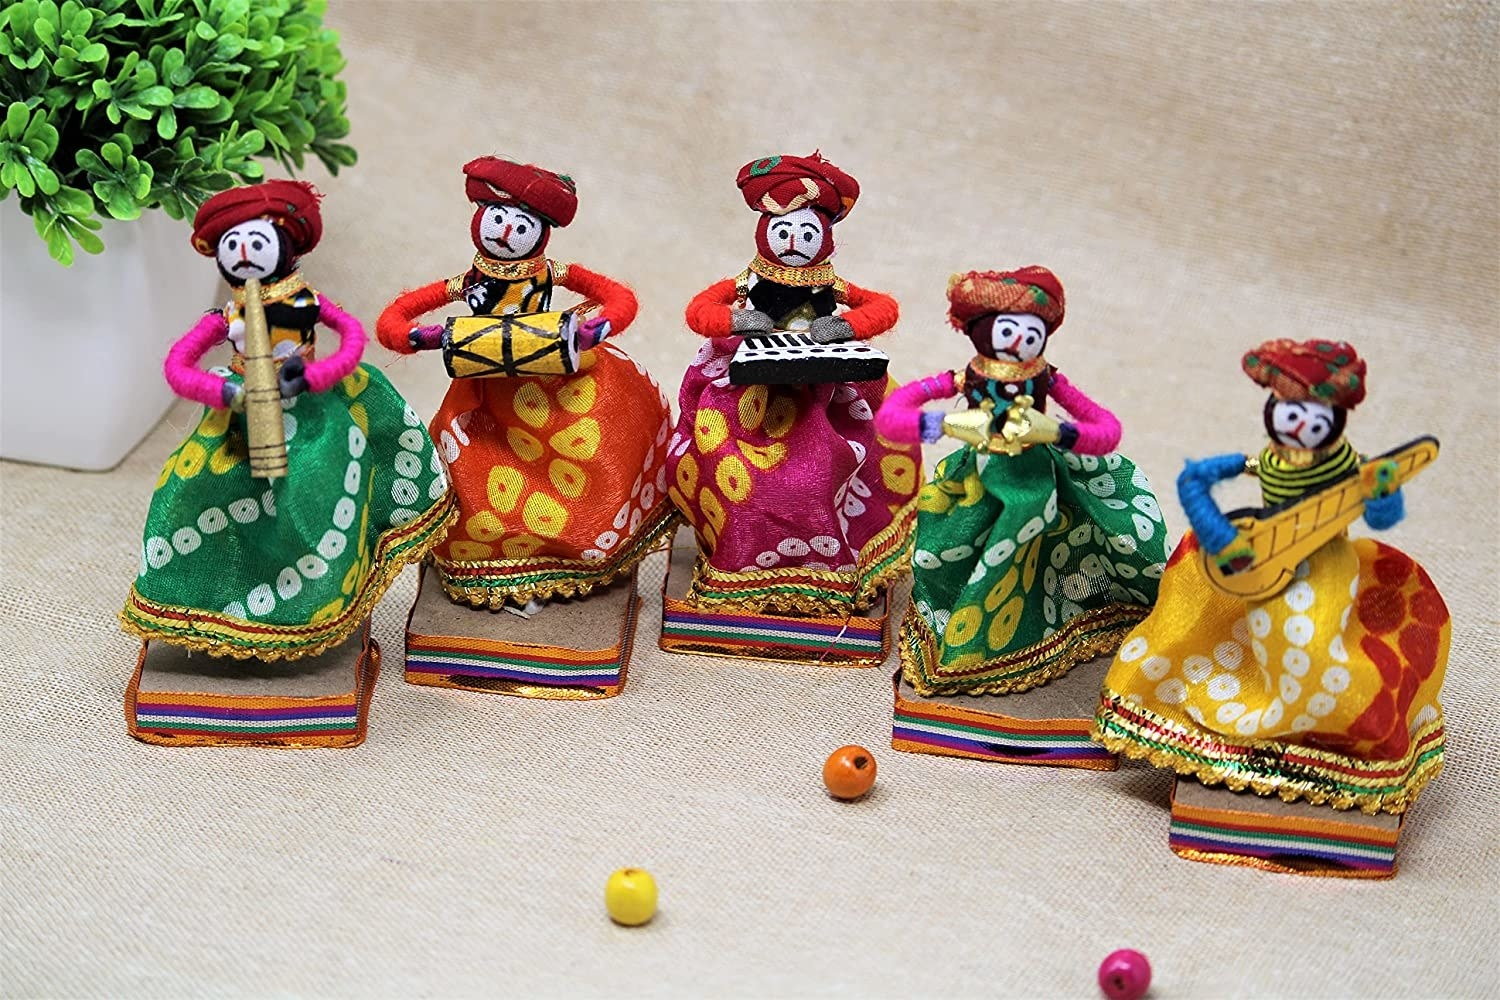 A set of 5 Rajasthani puppets each holding a musical instrument and wearing turbans and local Rajasthani attire